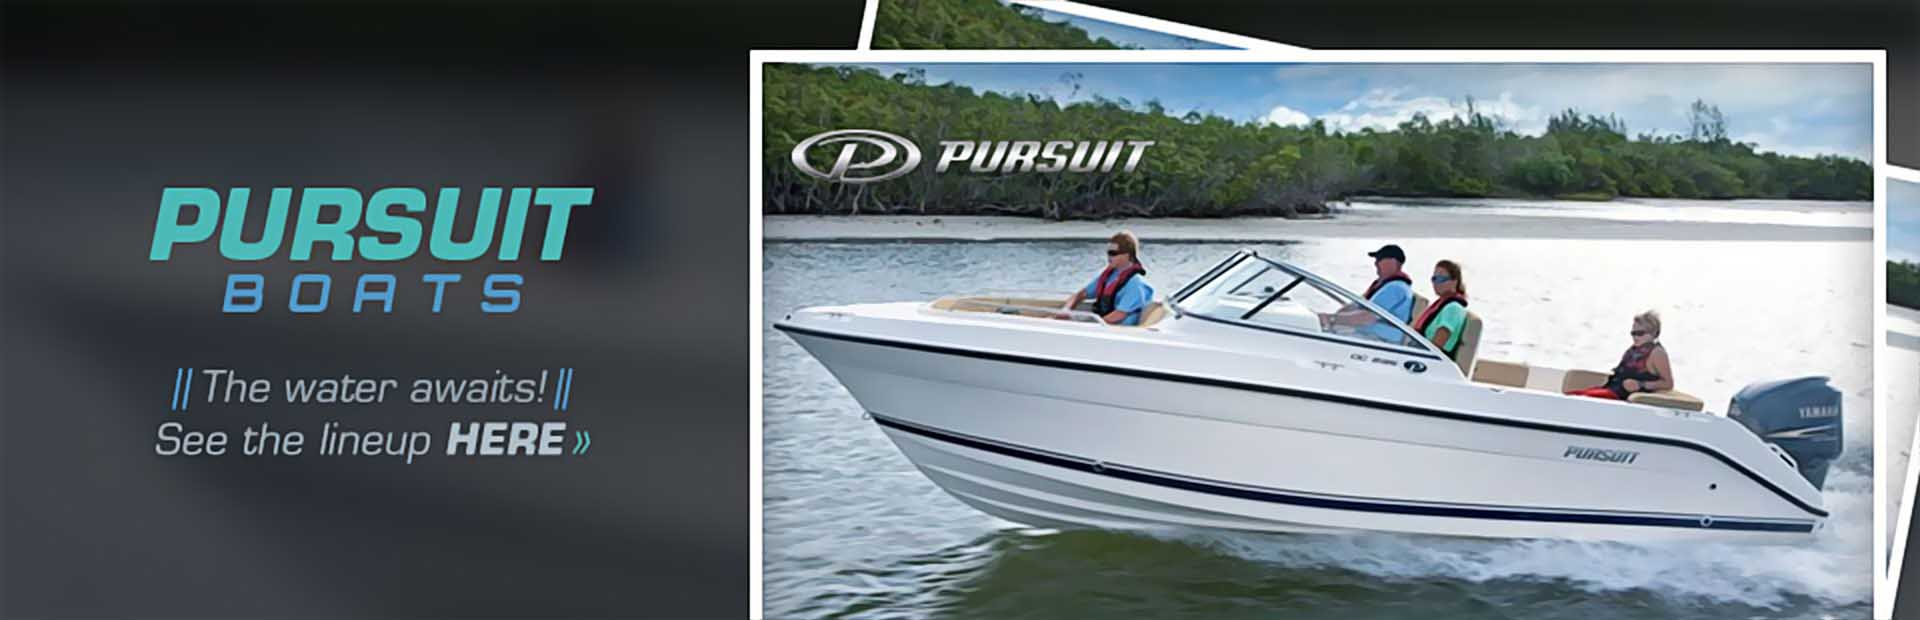 Pursuit Boats: Click here to view the lineup!